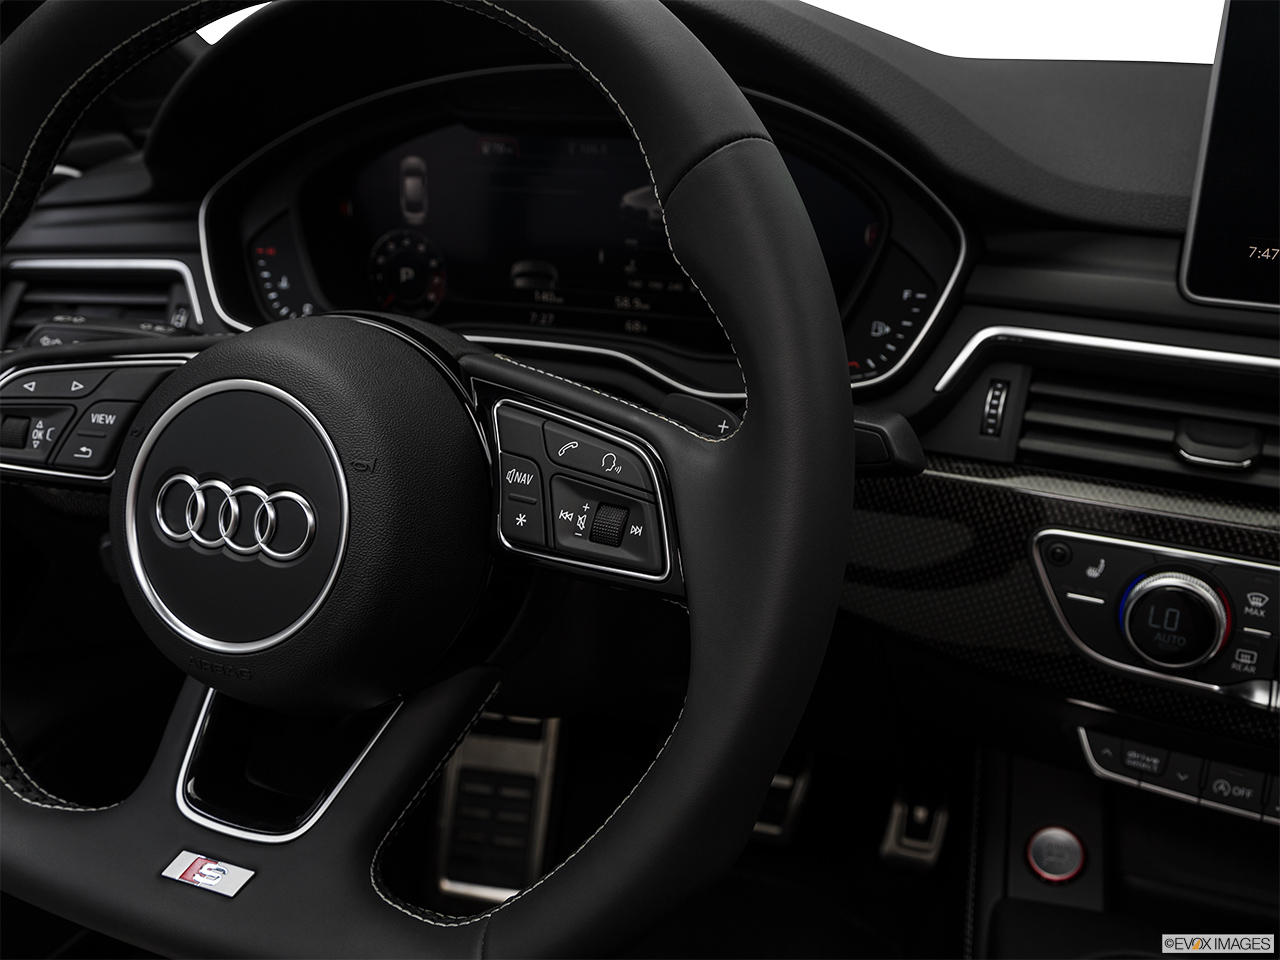 2019 Audi S5 Sportback Premium Plus 3.0 TFSI Steering Wheel Controls (Right Side)